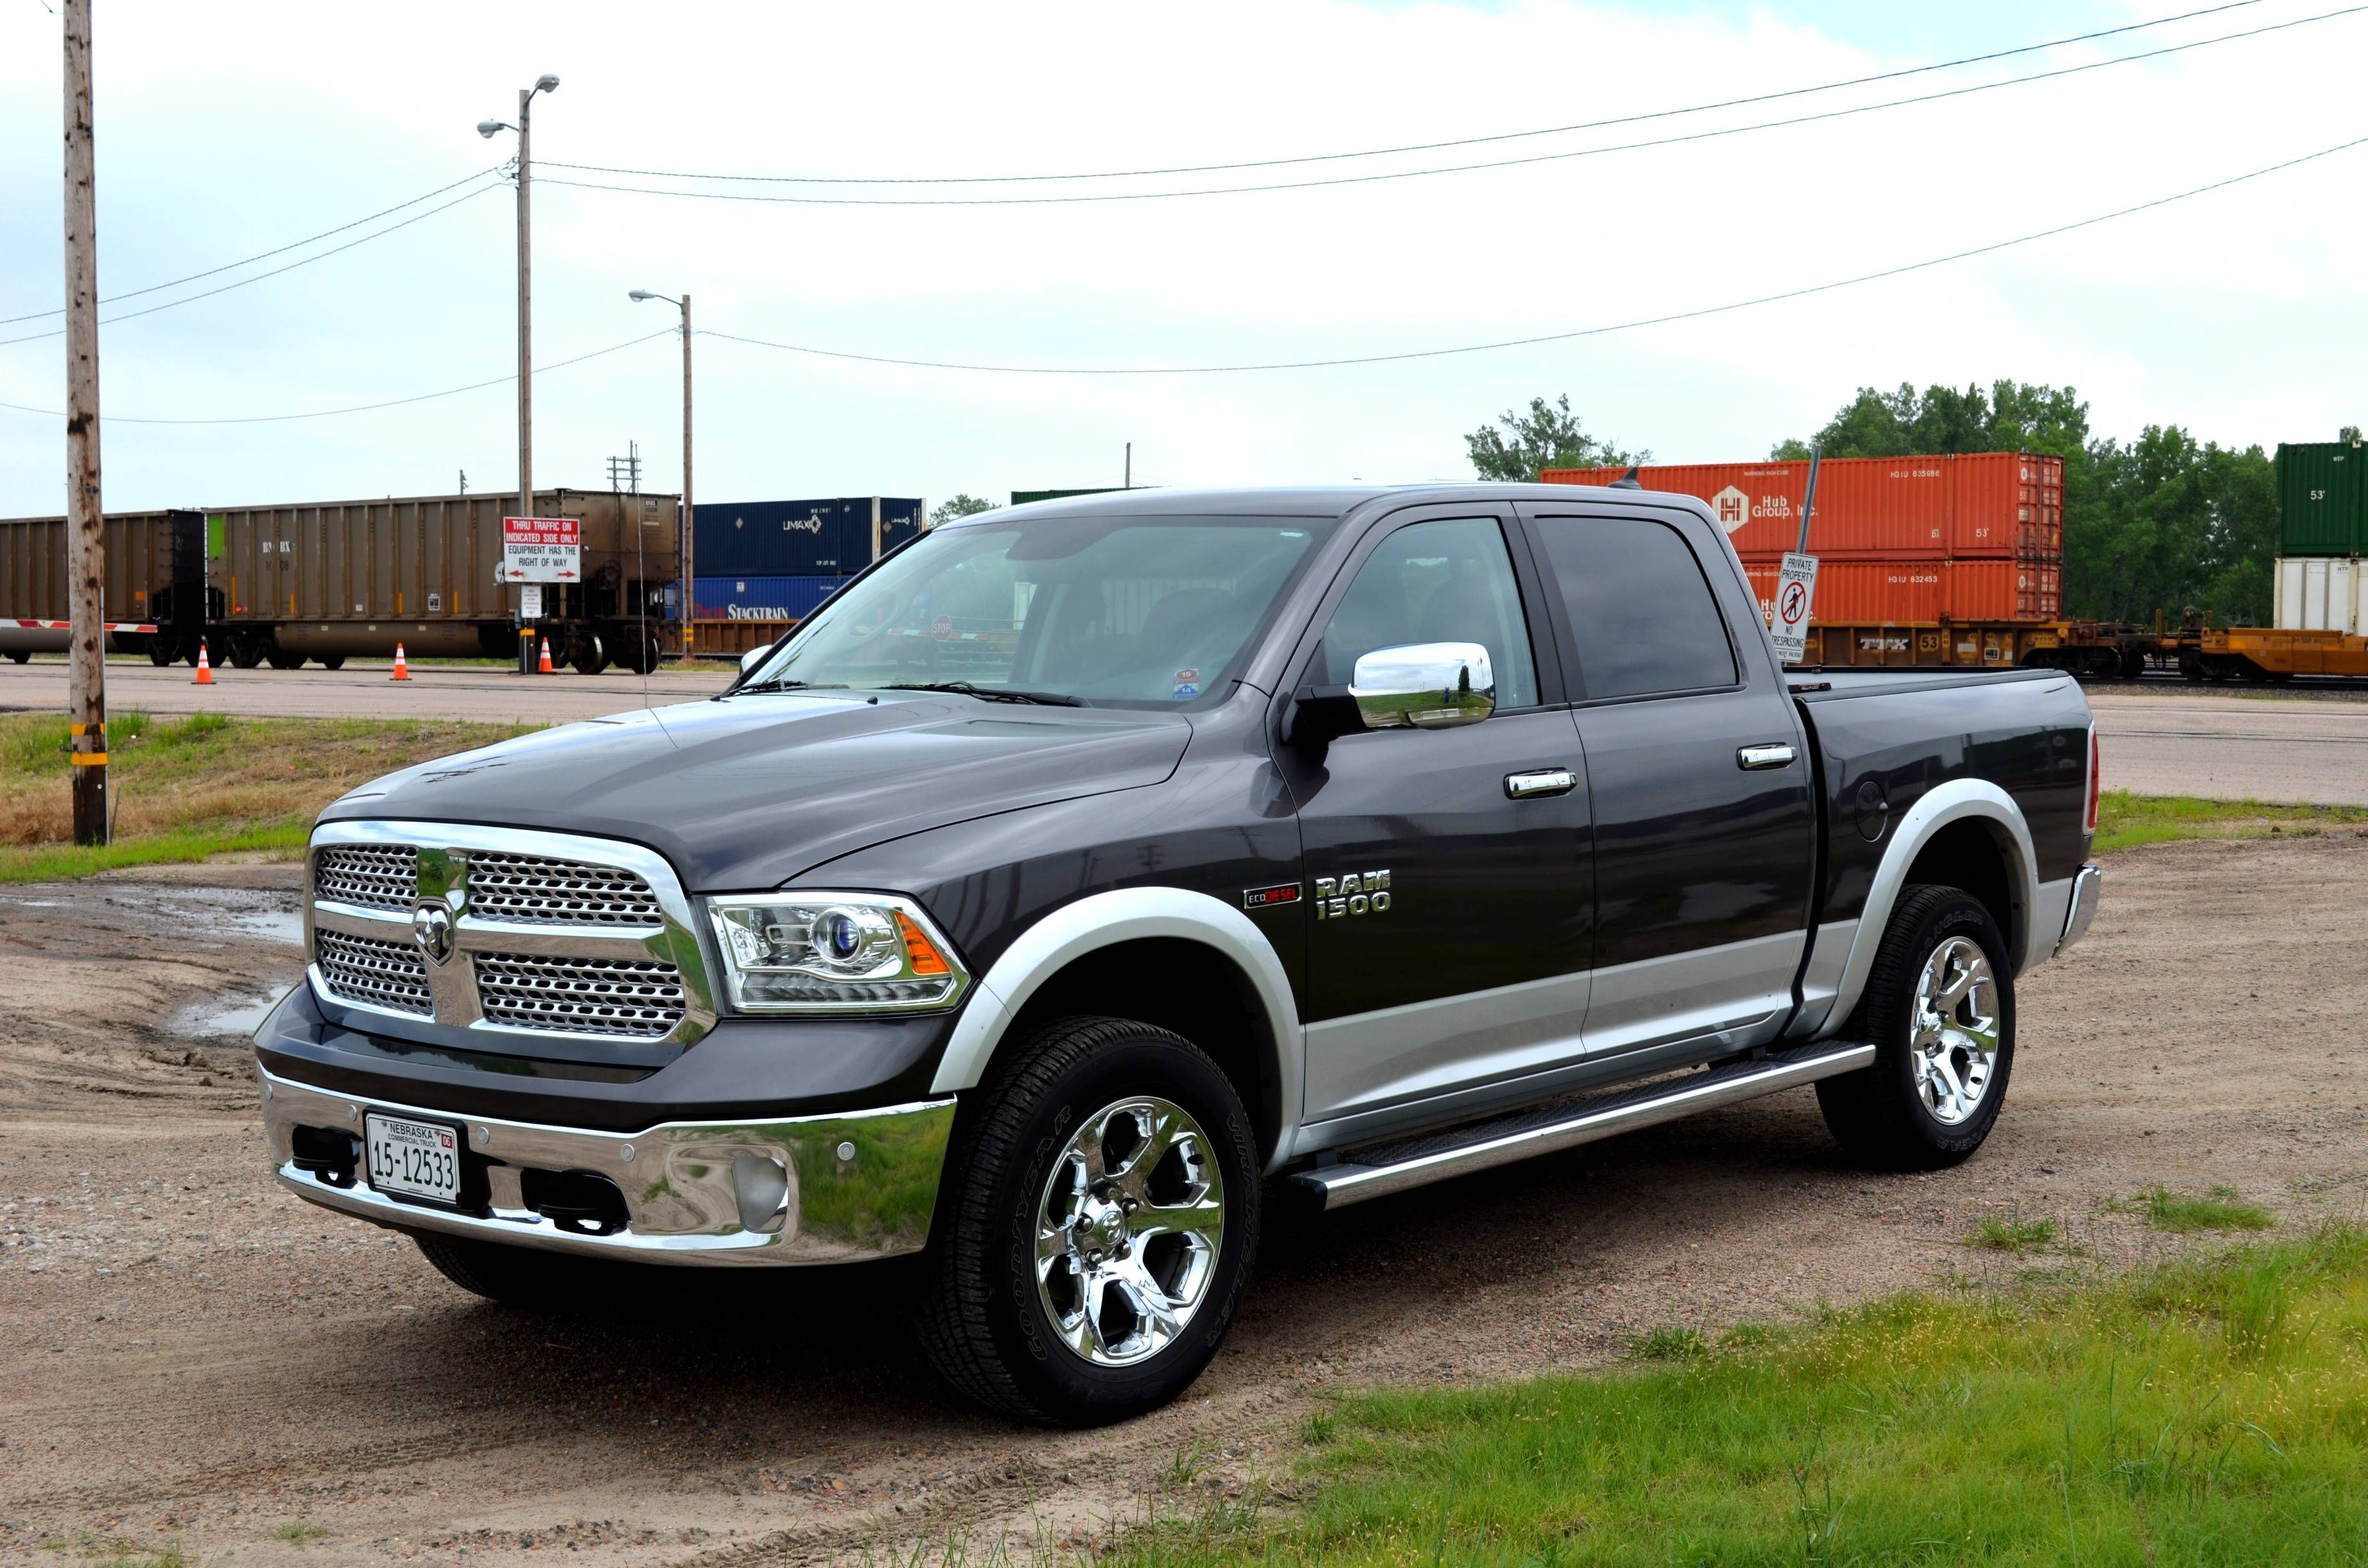 Entry in the June 2015 Ram 1500 Truck of the Month Contest